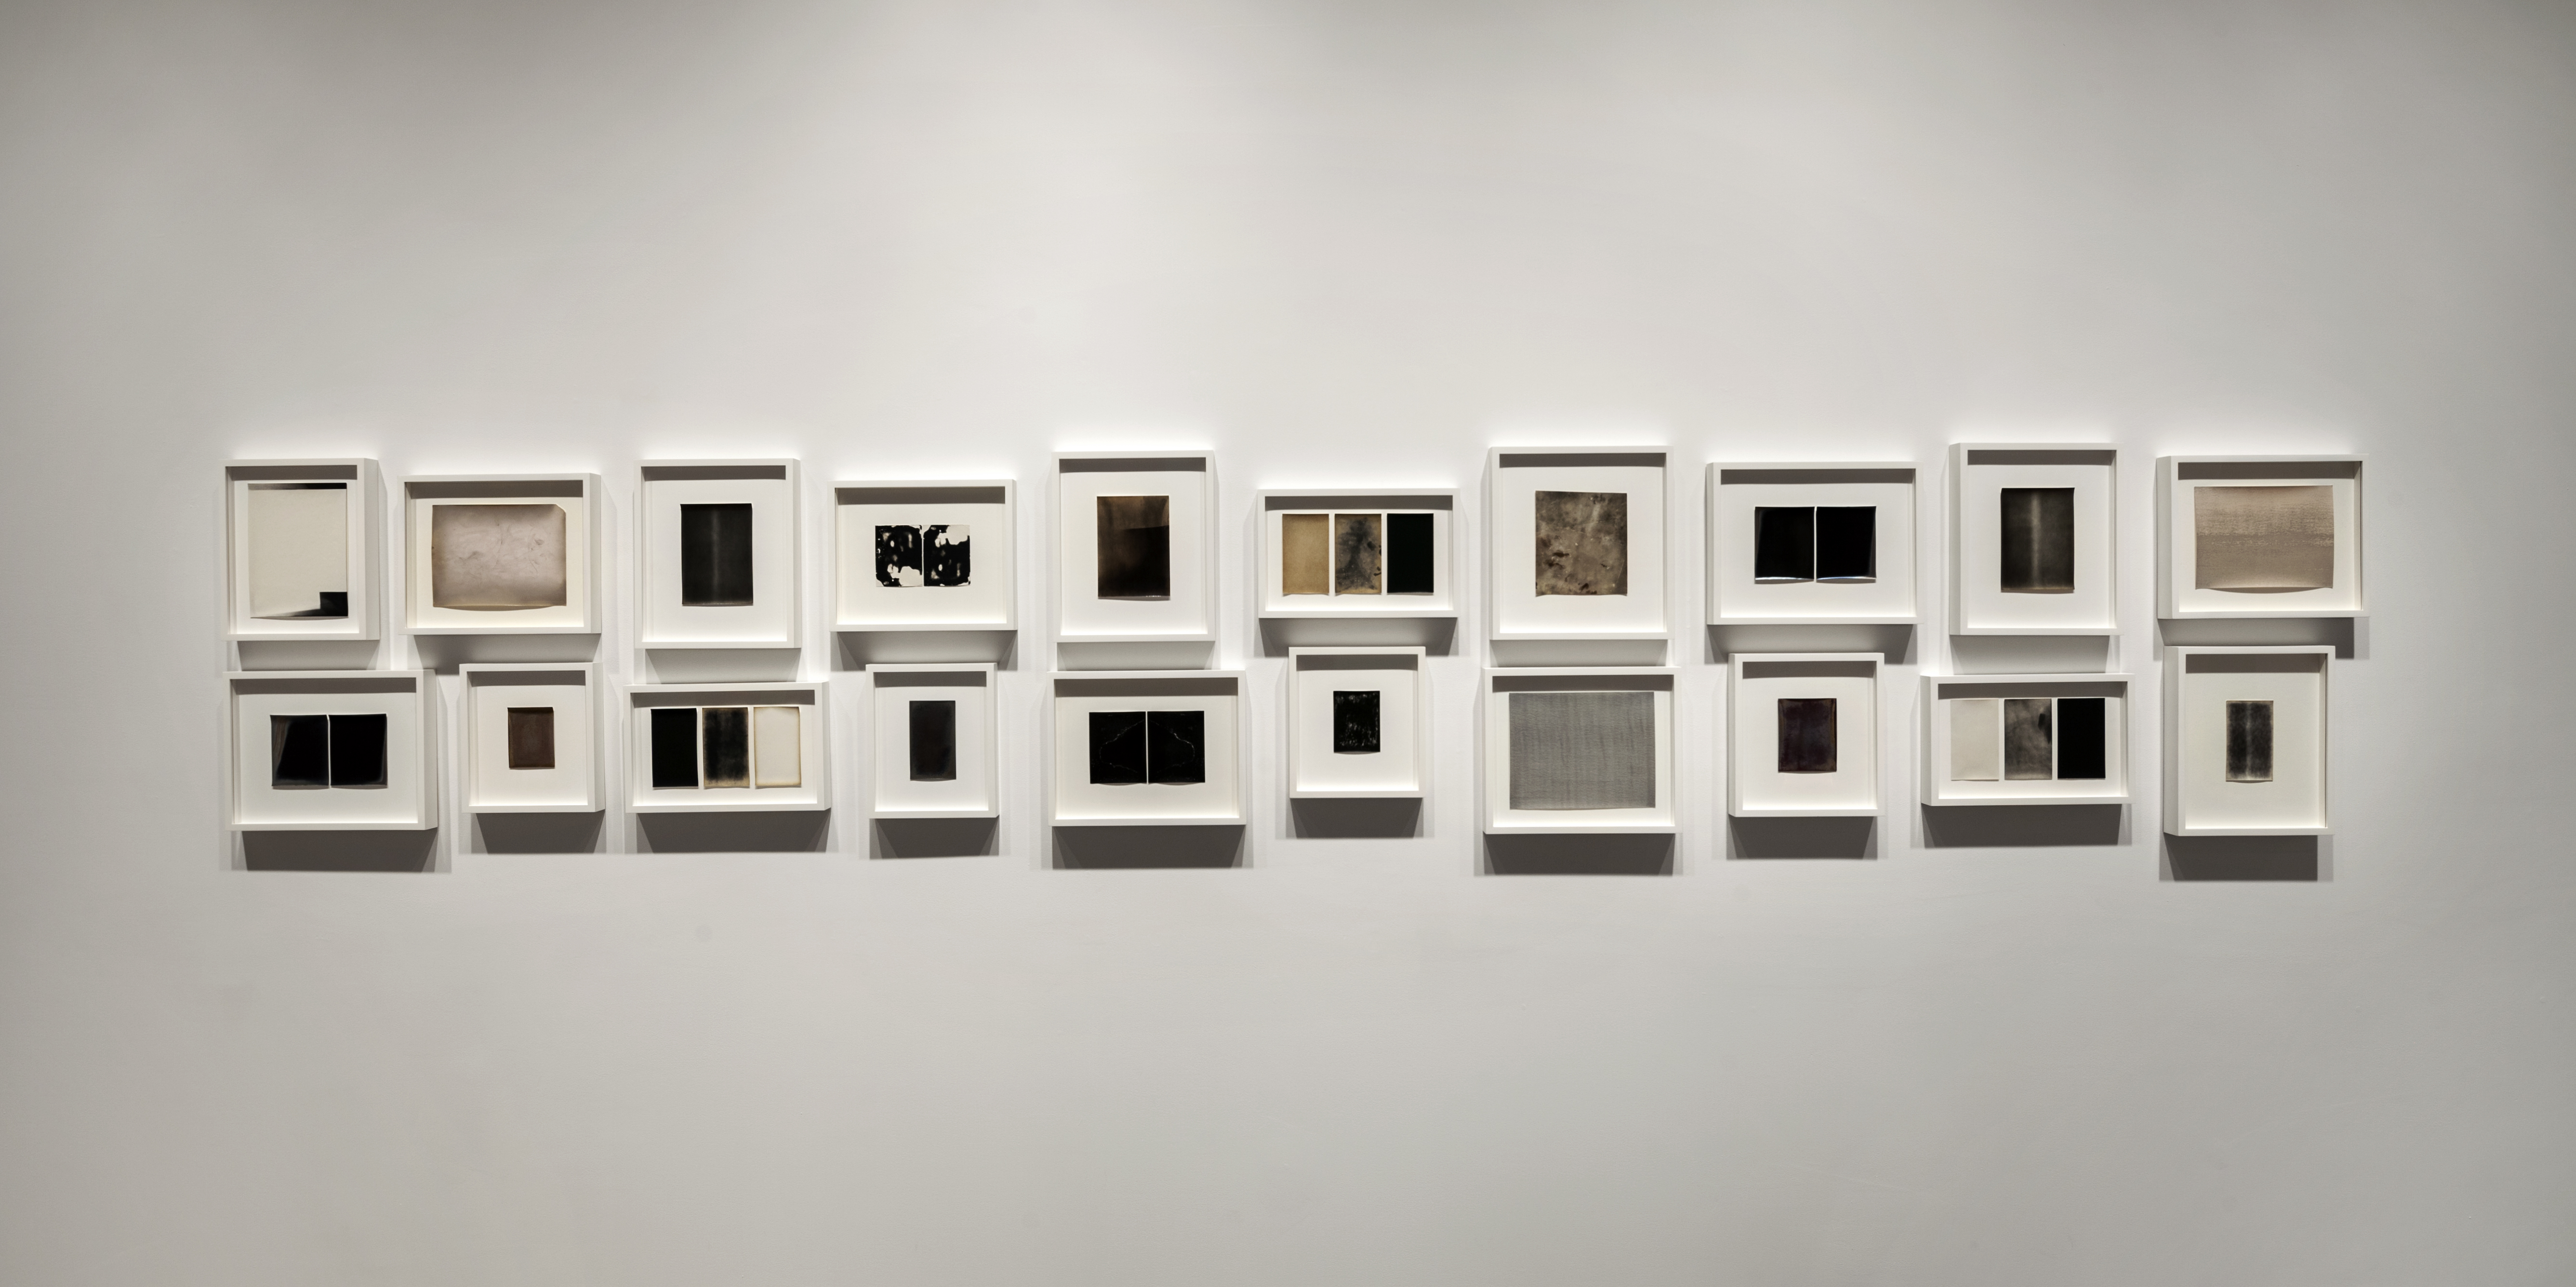 Paper Wait by Alison Rossiter at Yossi Milo Gallery